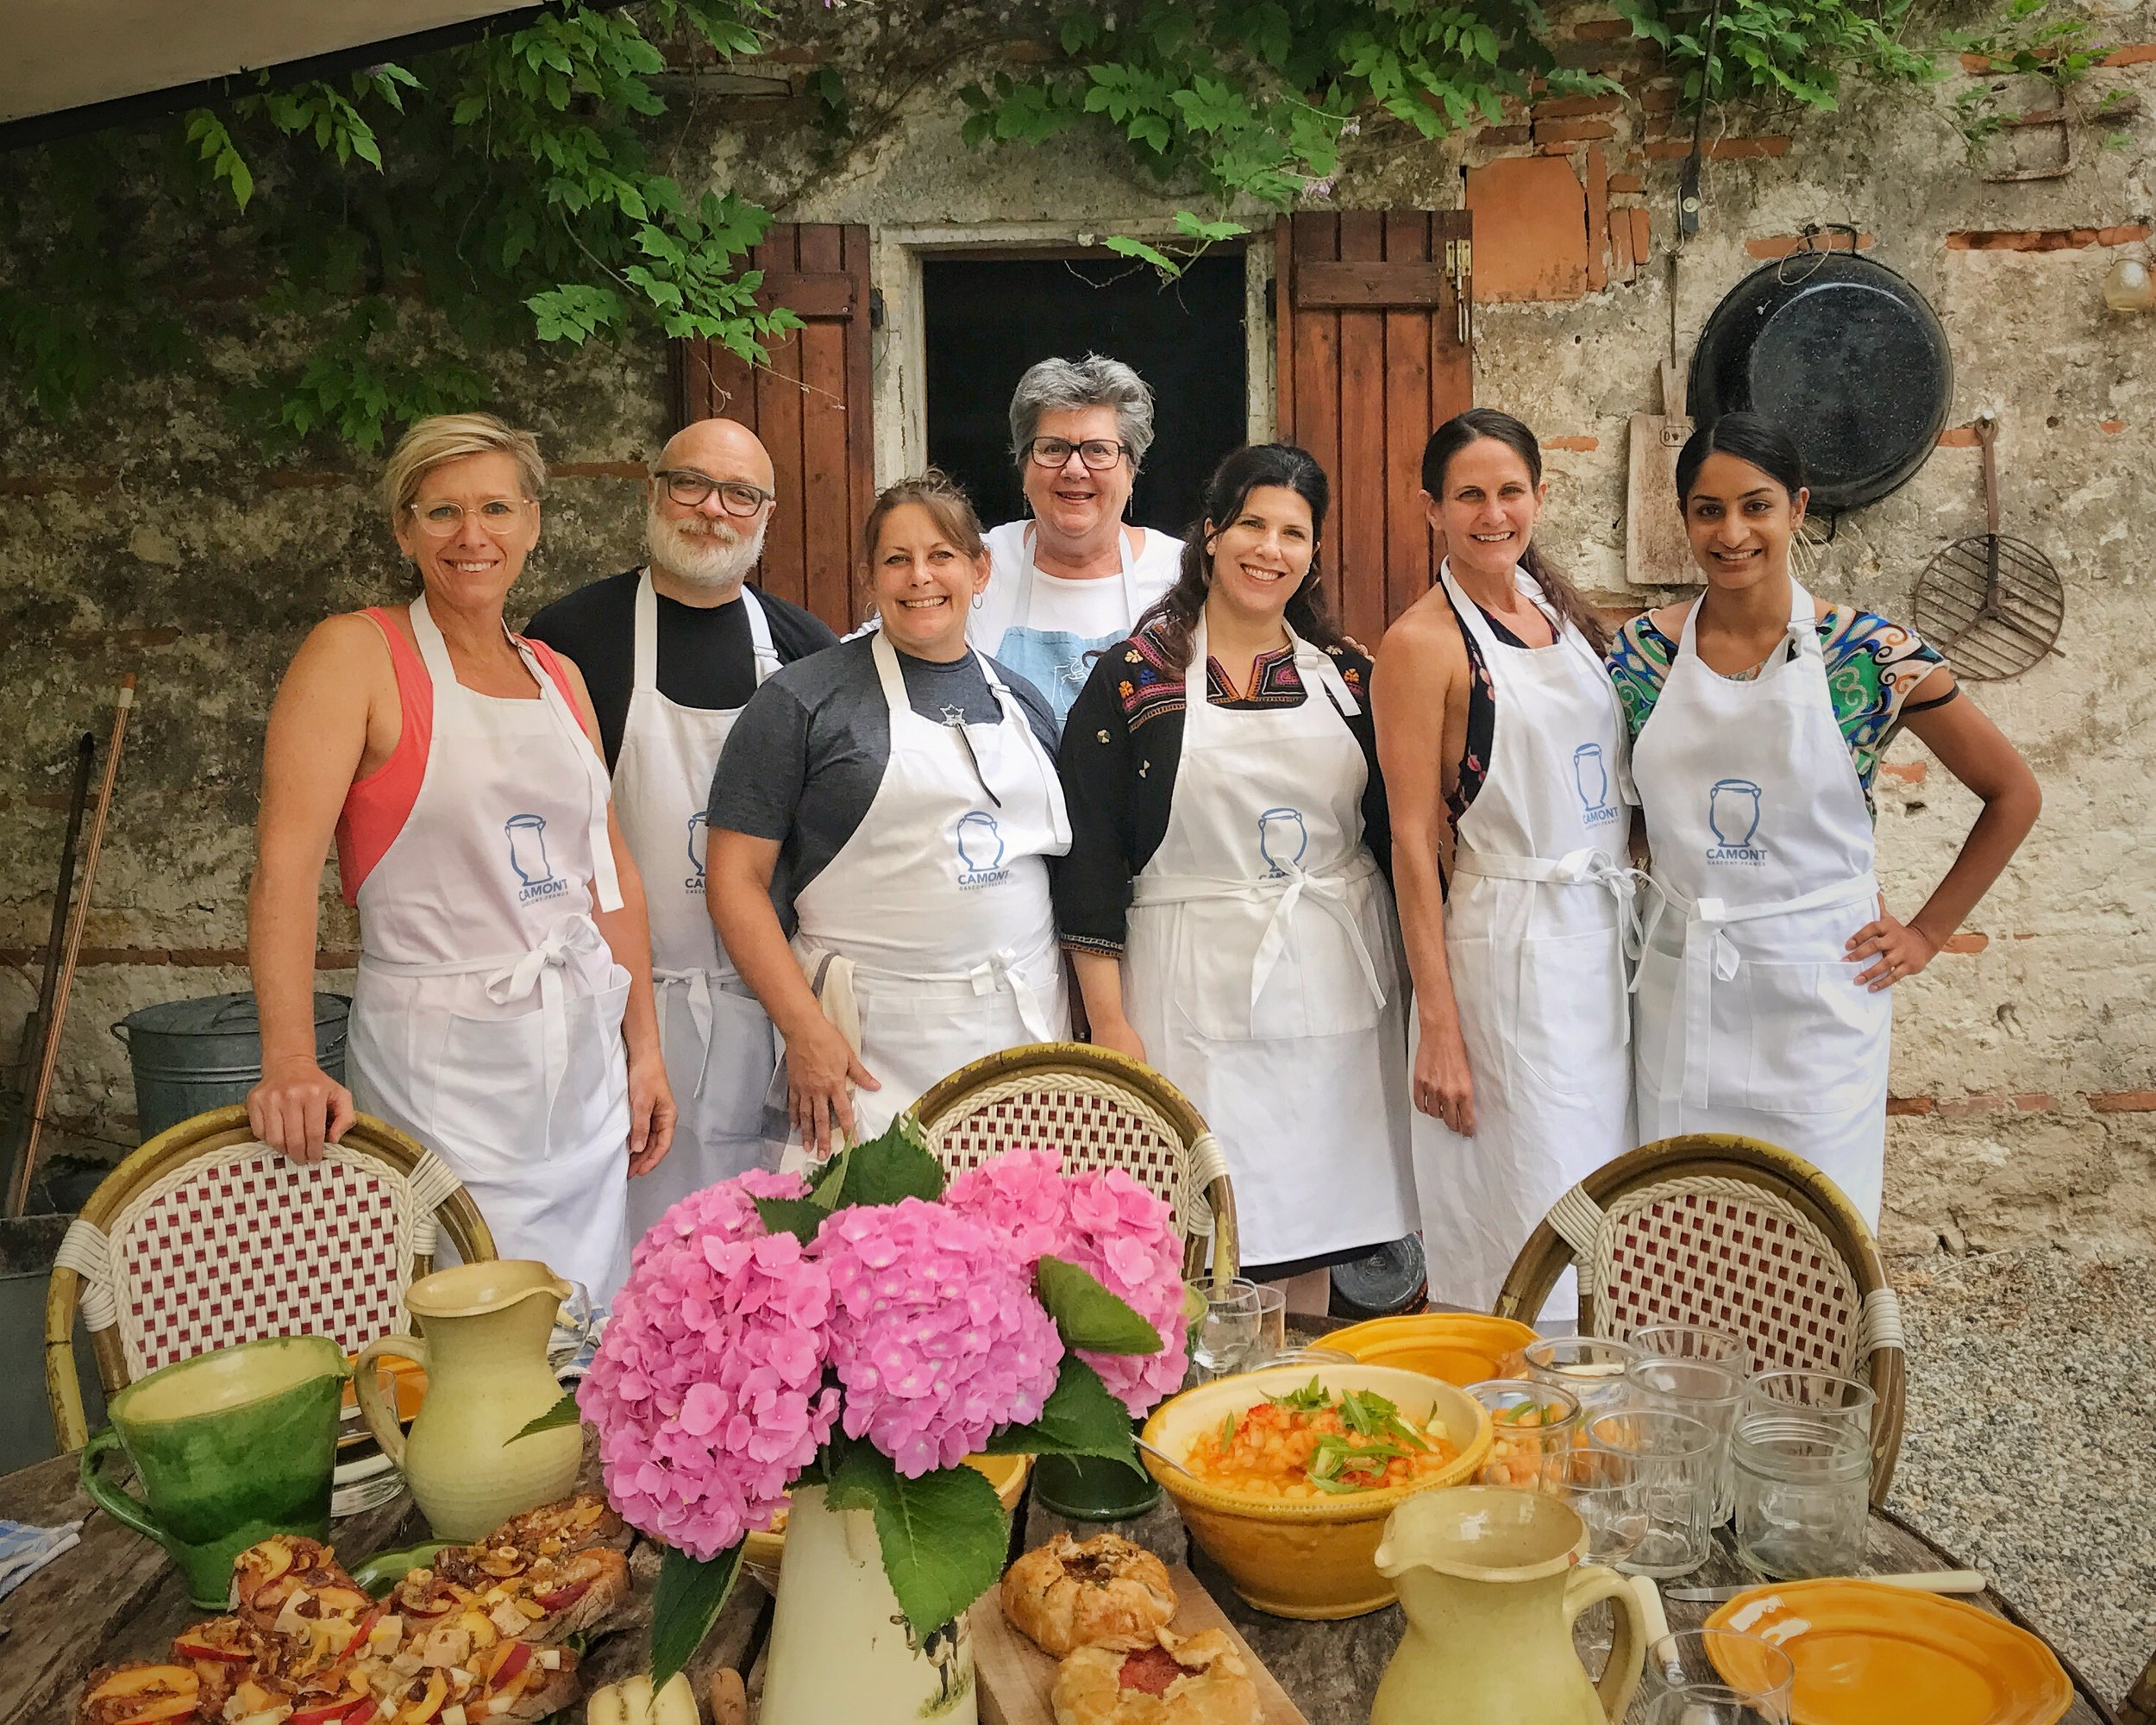 5-day cooking program - classic gascony